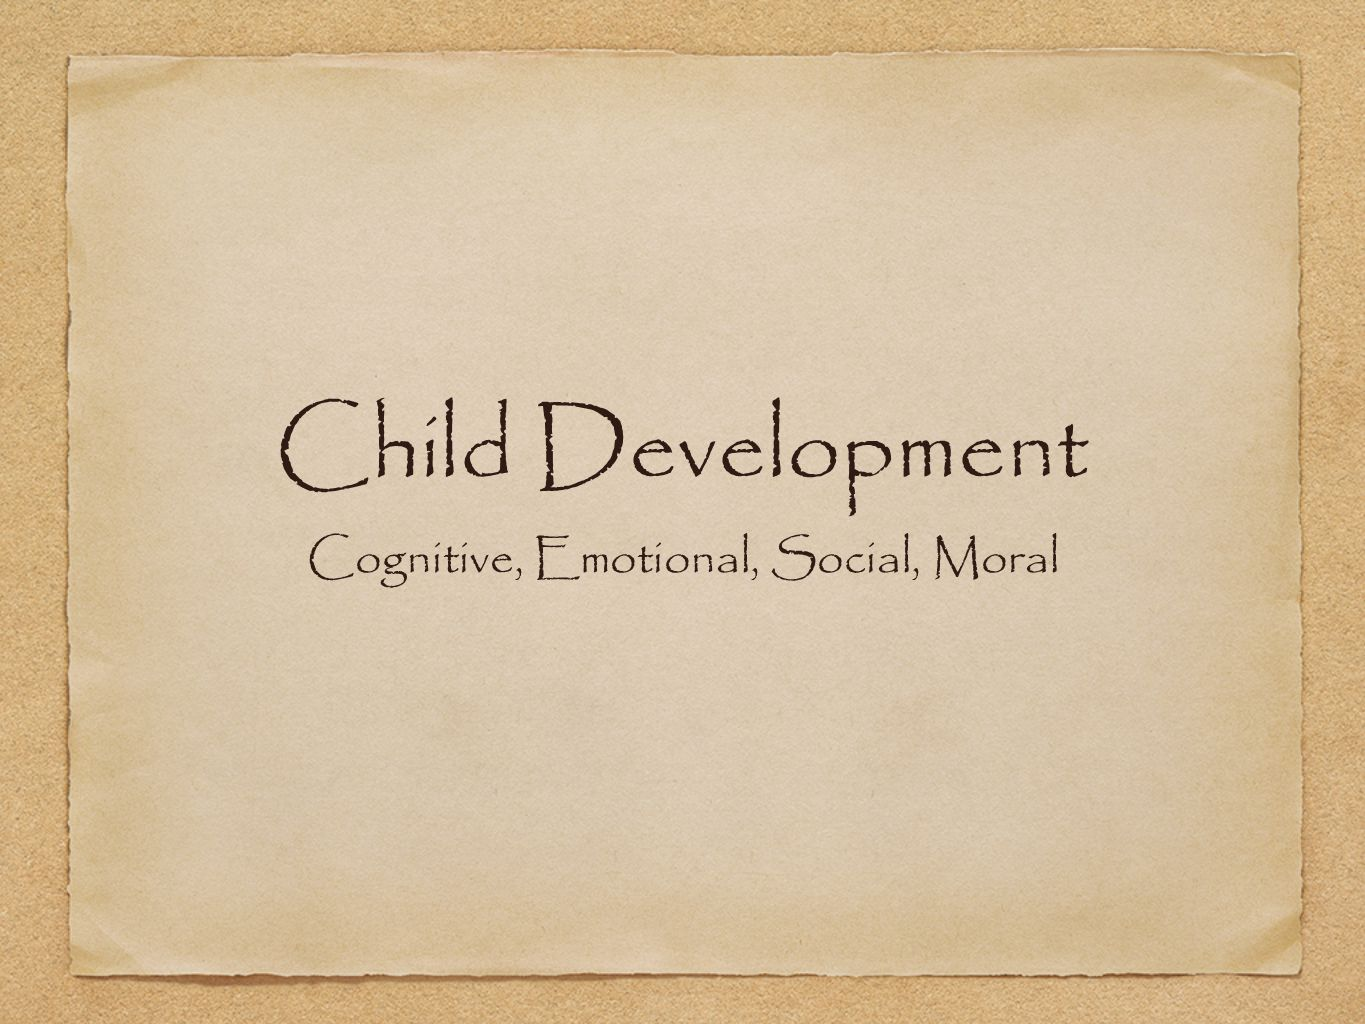 Child Development Cognitive, Emotional, Social, Moral